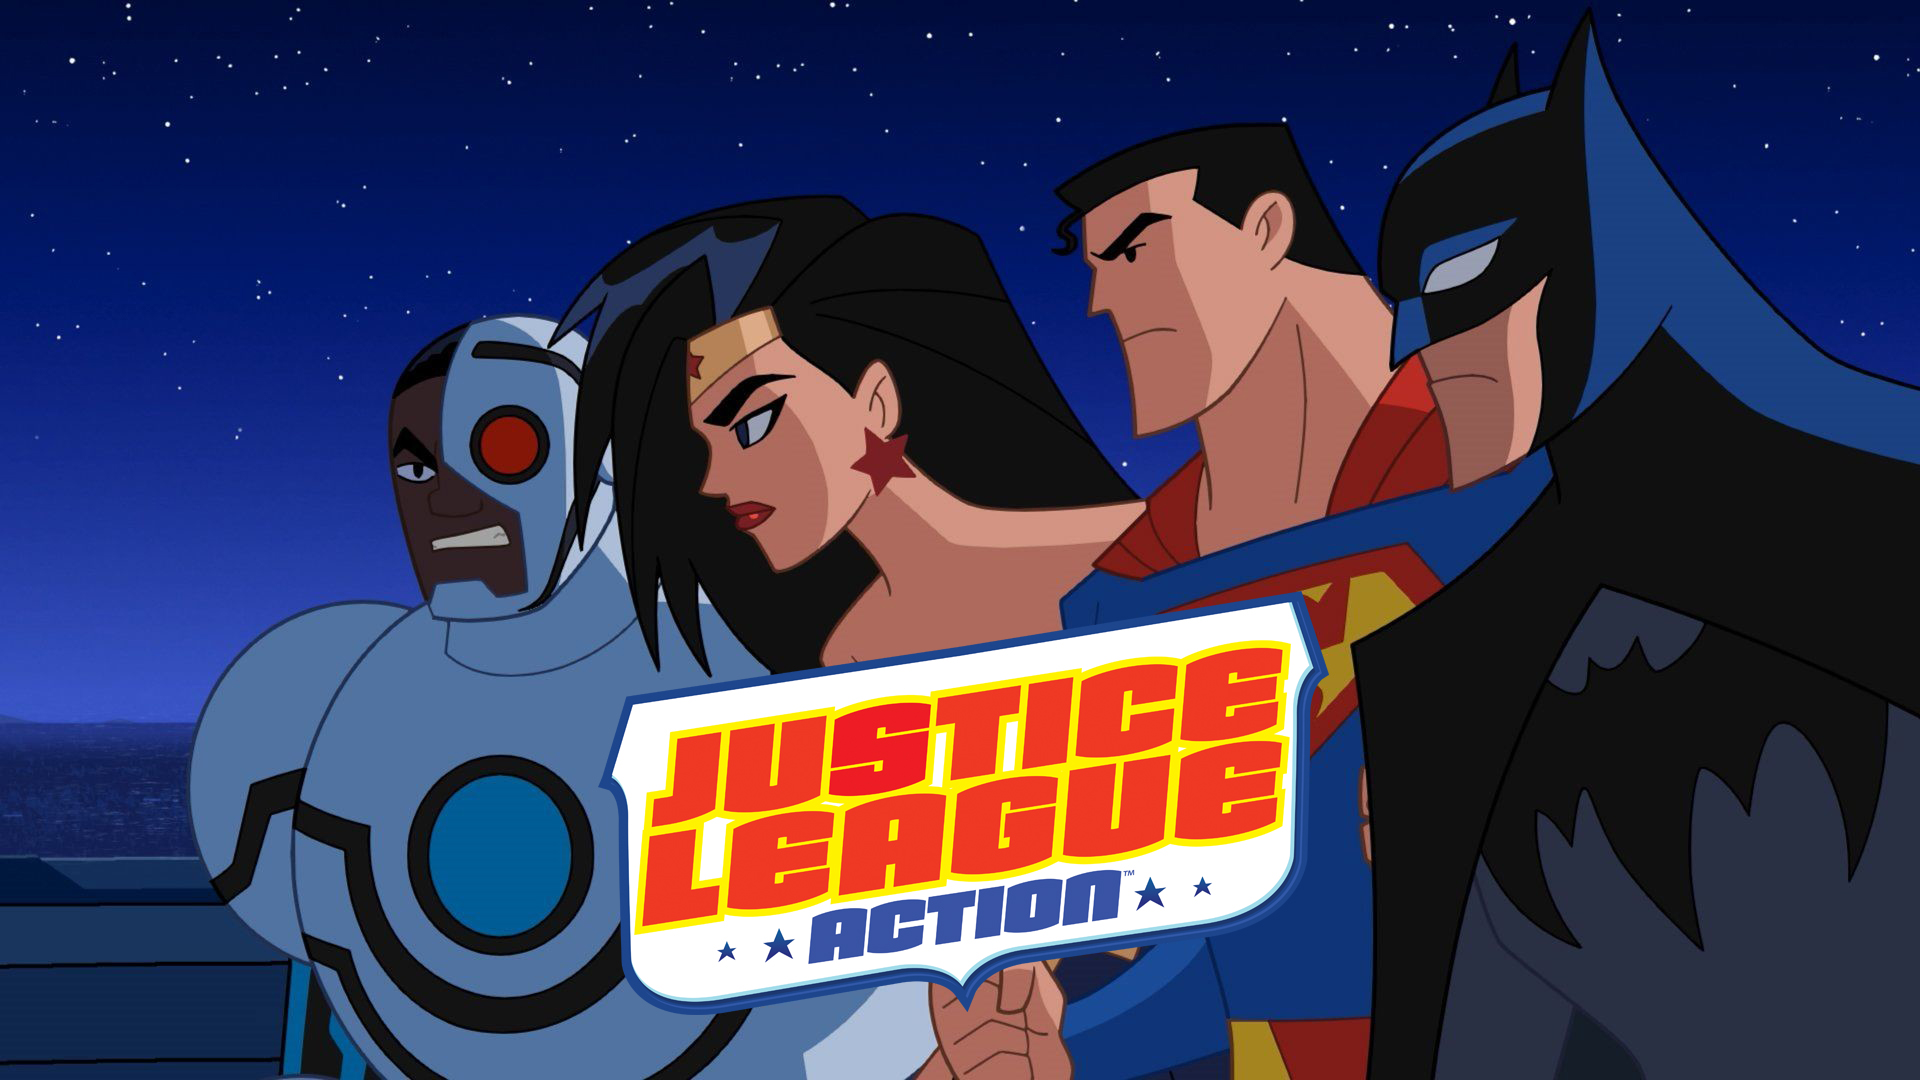 Justice League Action w logo.jpg